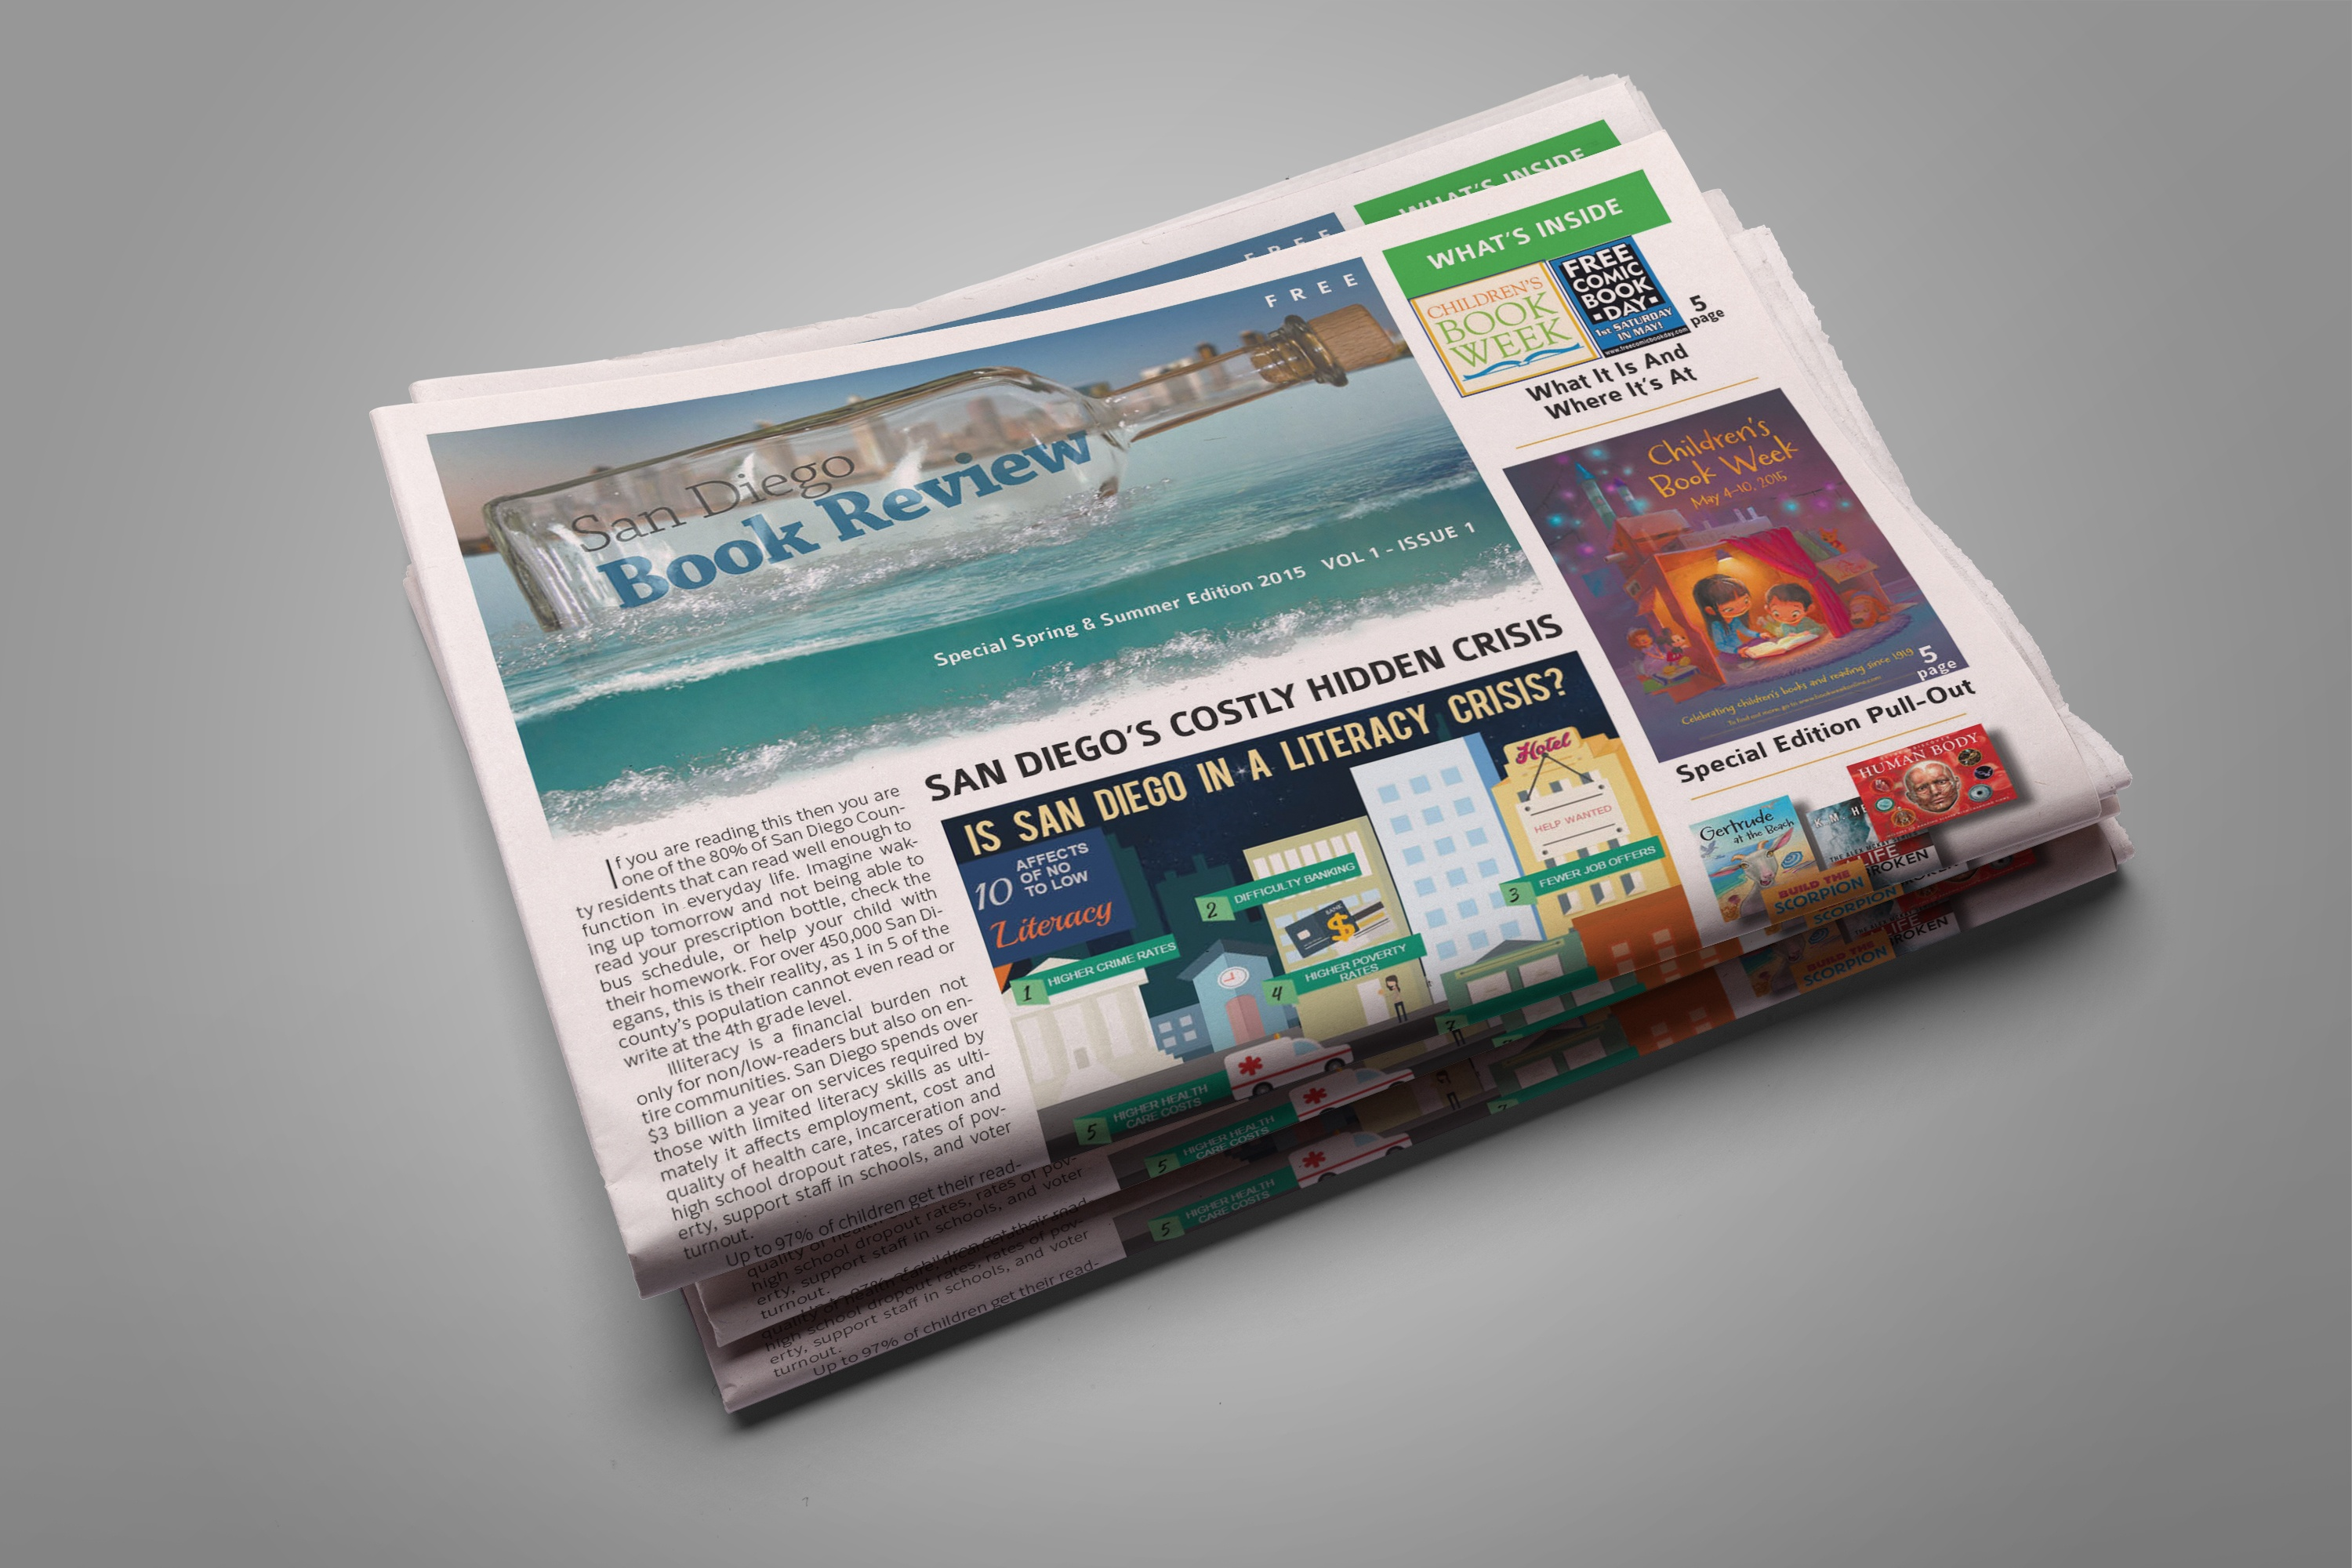 3 Myths About Print In the Digital Age